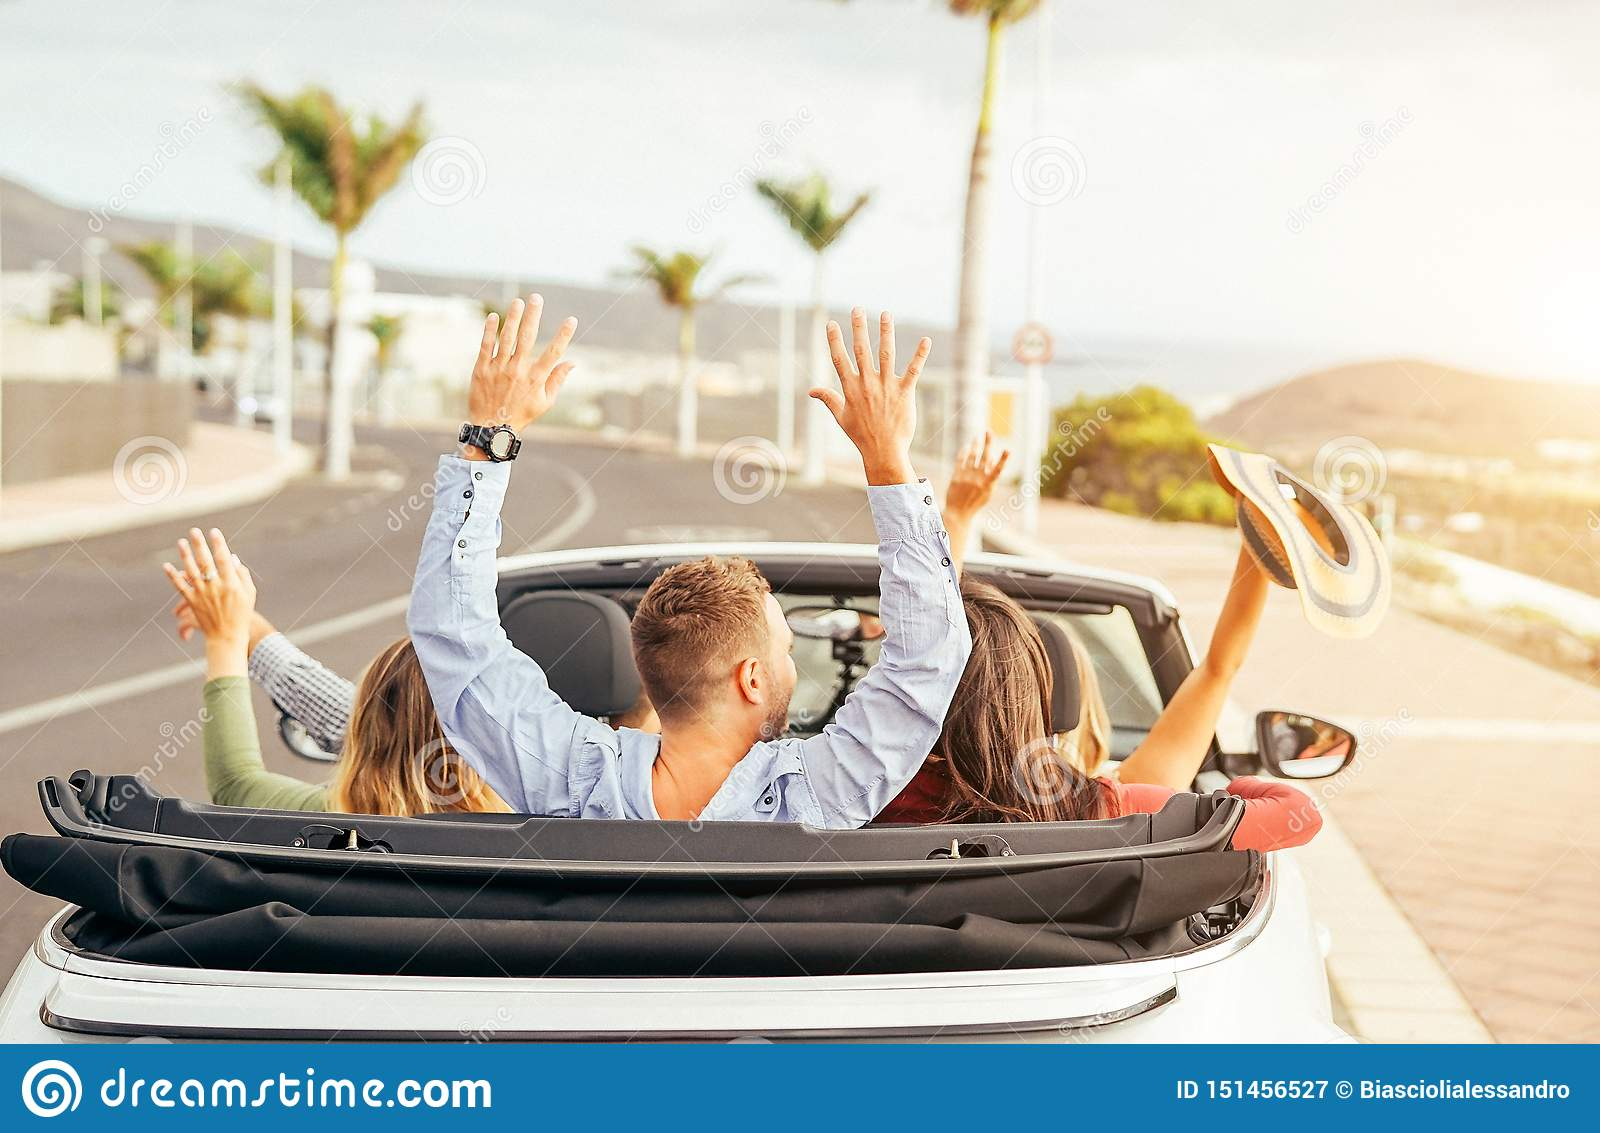 Happy friends having fun in convertible car at sunset in vacation - Young people making party and dancing in a cabrio auto